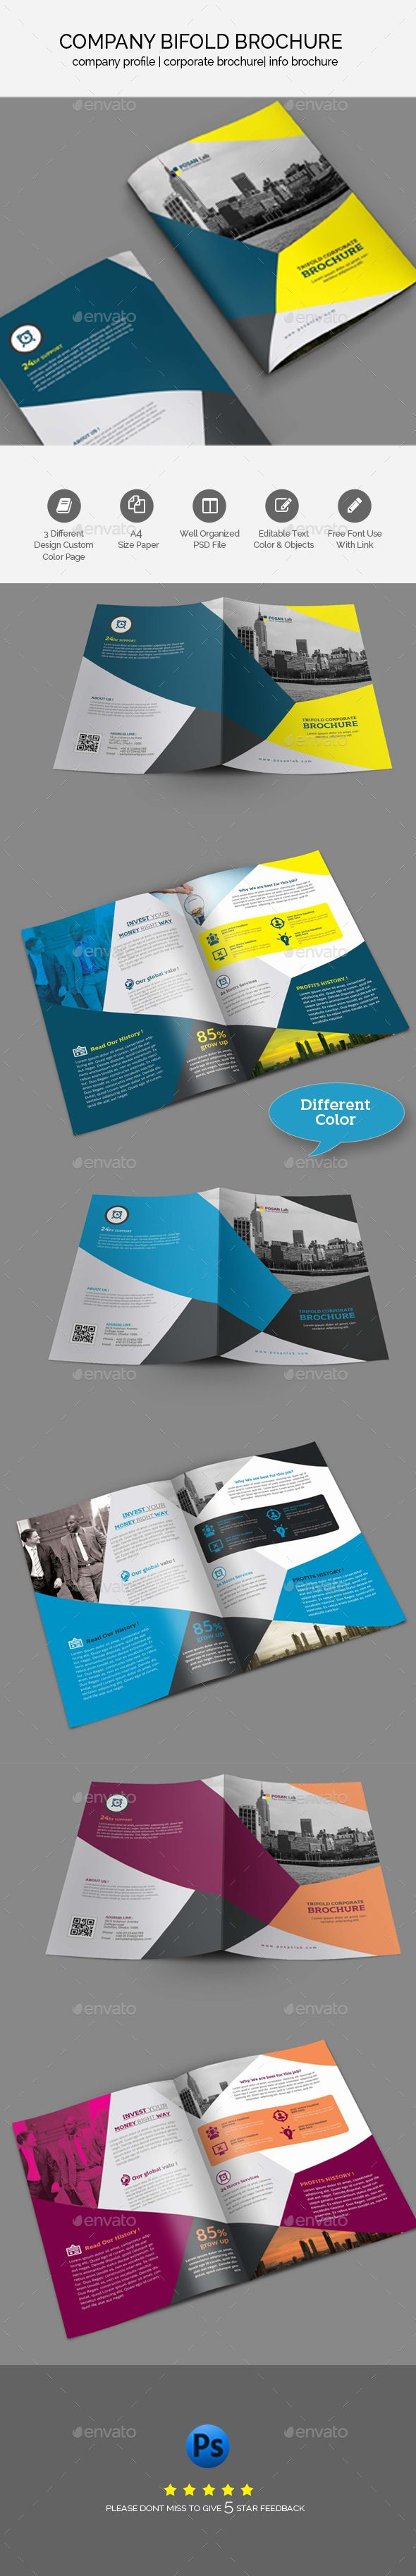 Corporate Bifold Business Brochure Template - #Corporate #Bifold #Business #Brochure #Print #Template #Design. Download here: https://graphicriver.net/item/bifold-business-brochure-template/19492617?ref=yinkira